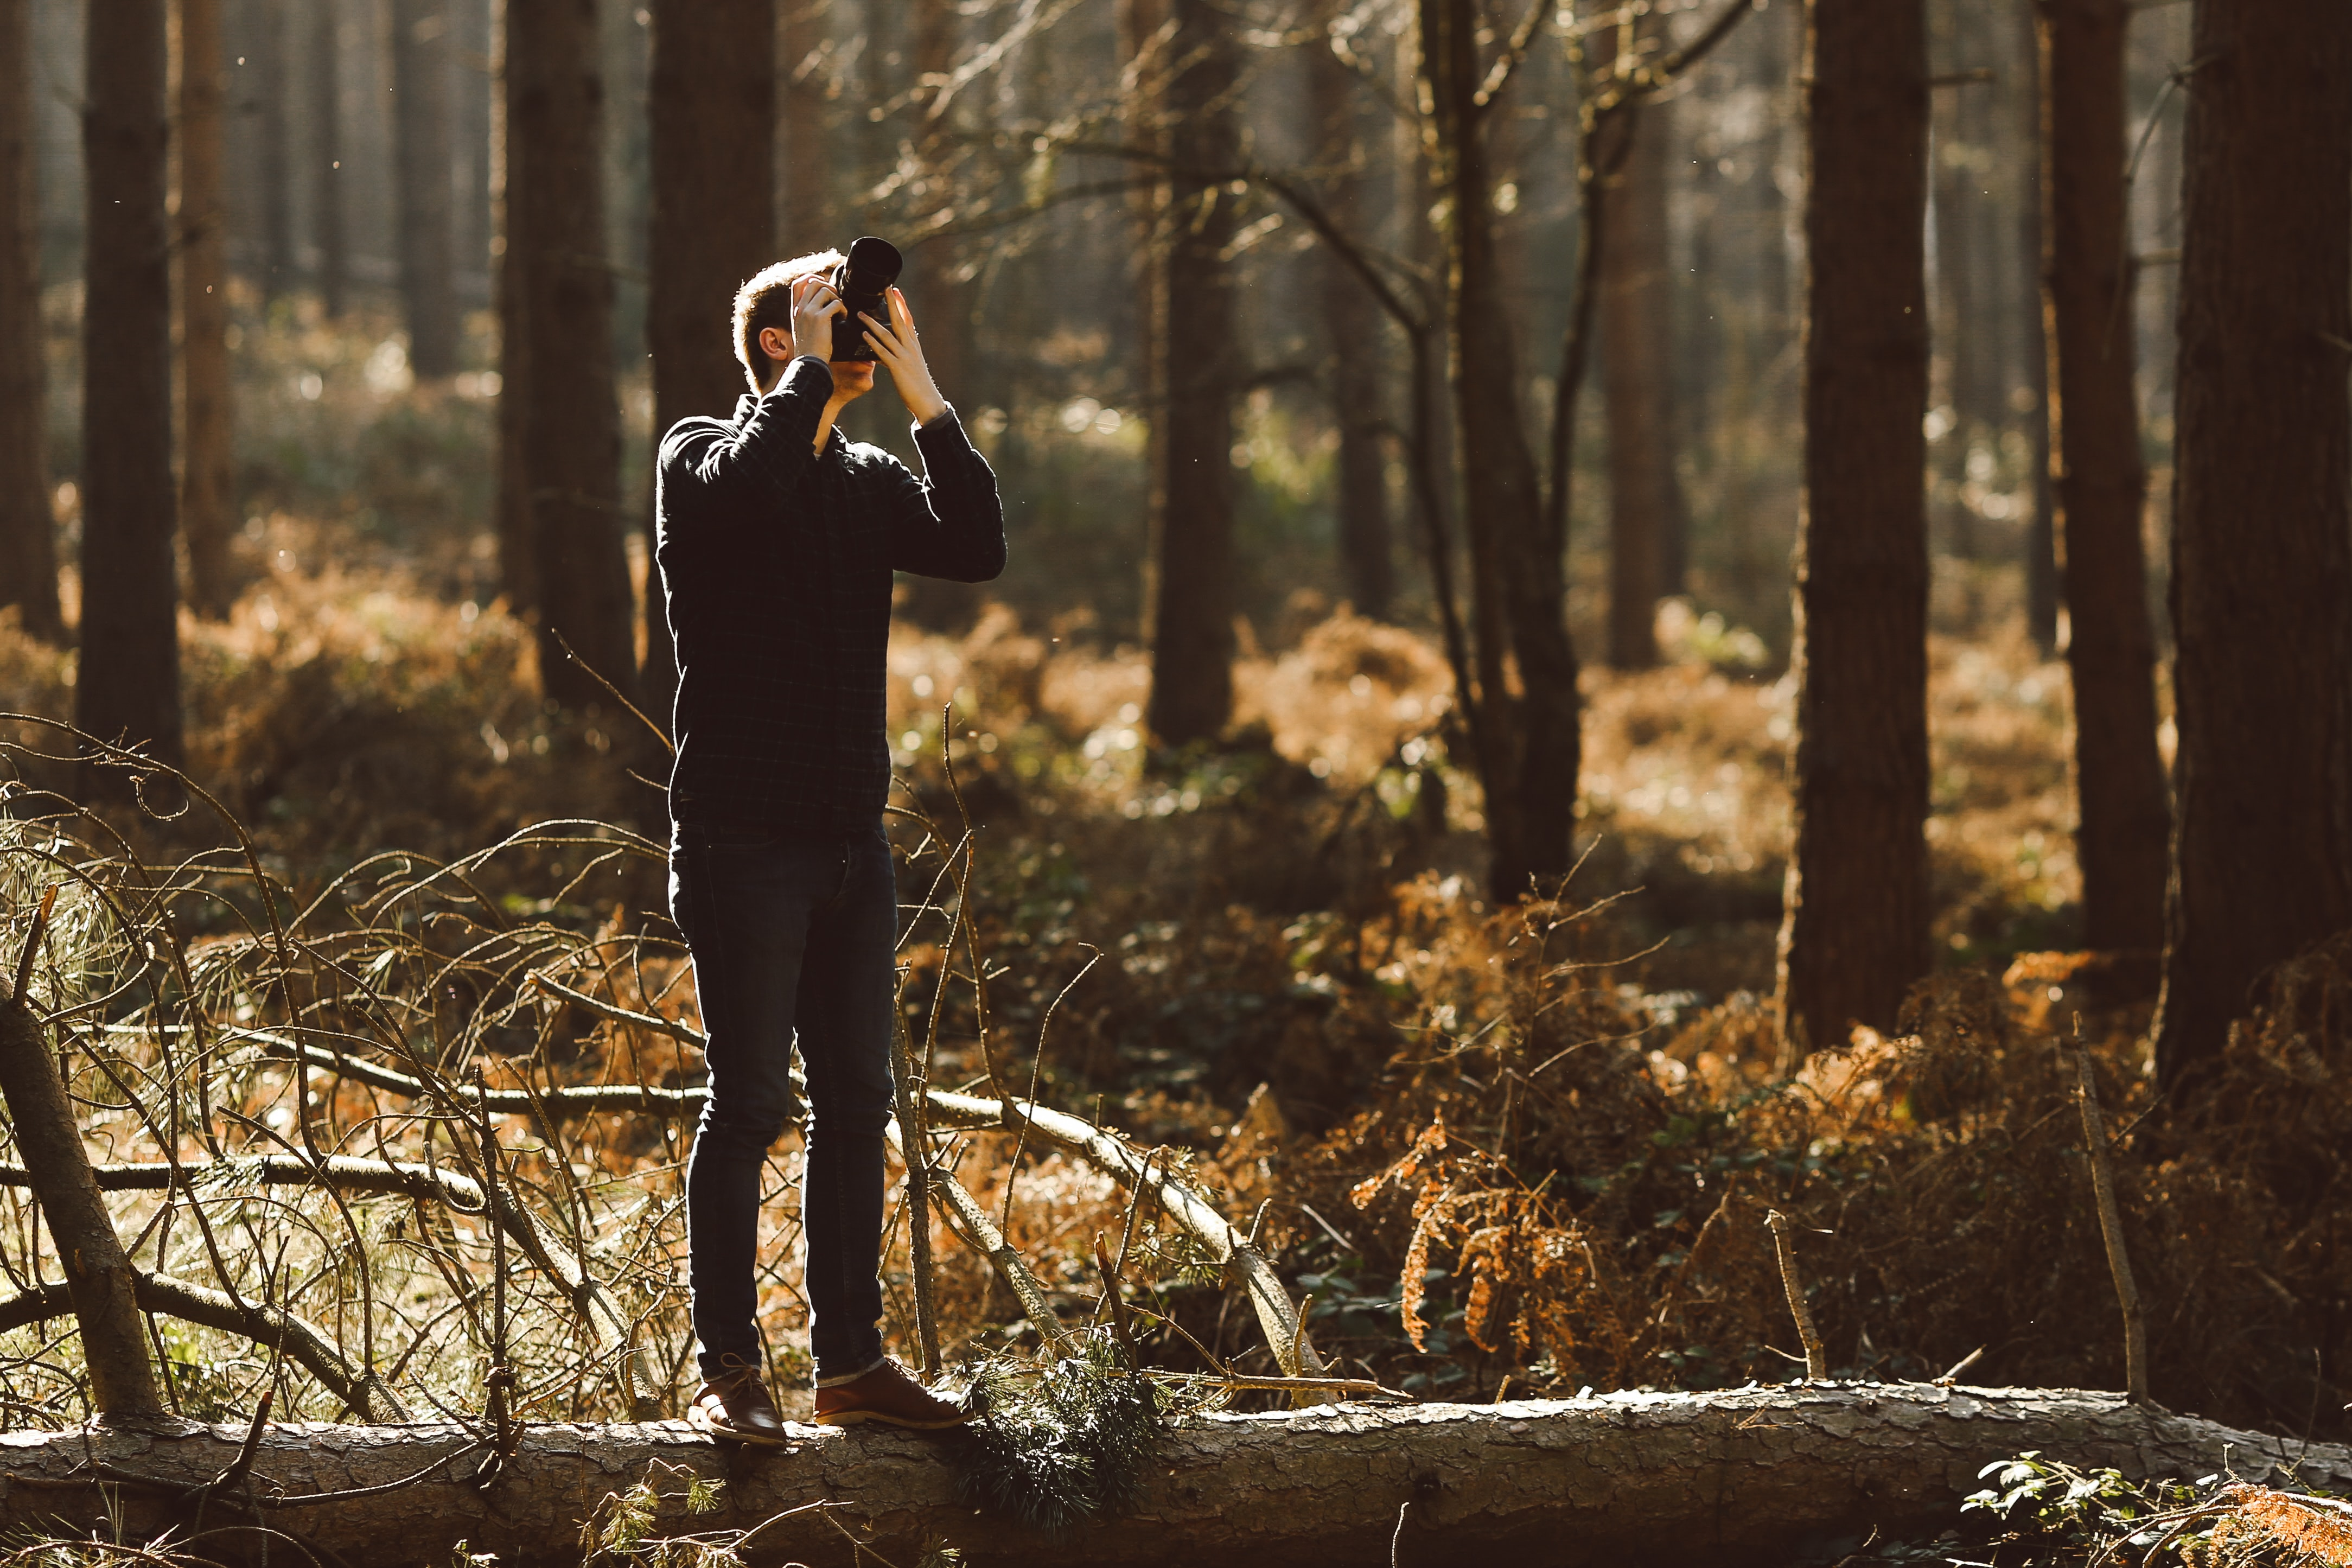 person surrounded by trees and capturing photo